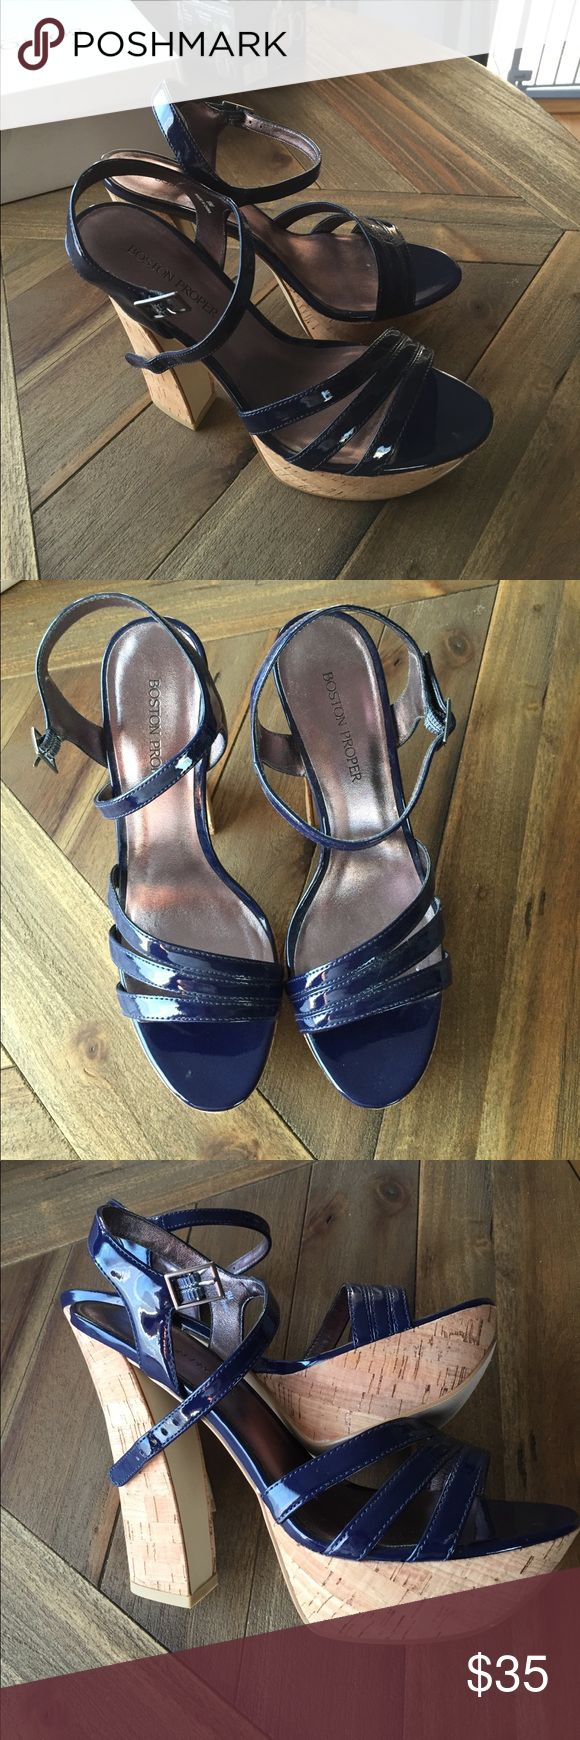 Navy blue patent high heel sandals Shiny navy patent strappy sandals with cork heel. Worn once Boston Proper Shoes Sandals